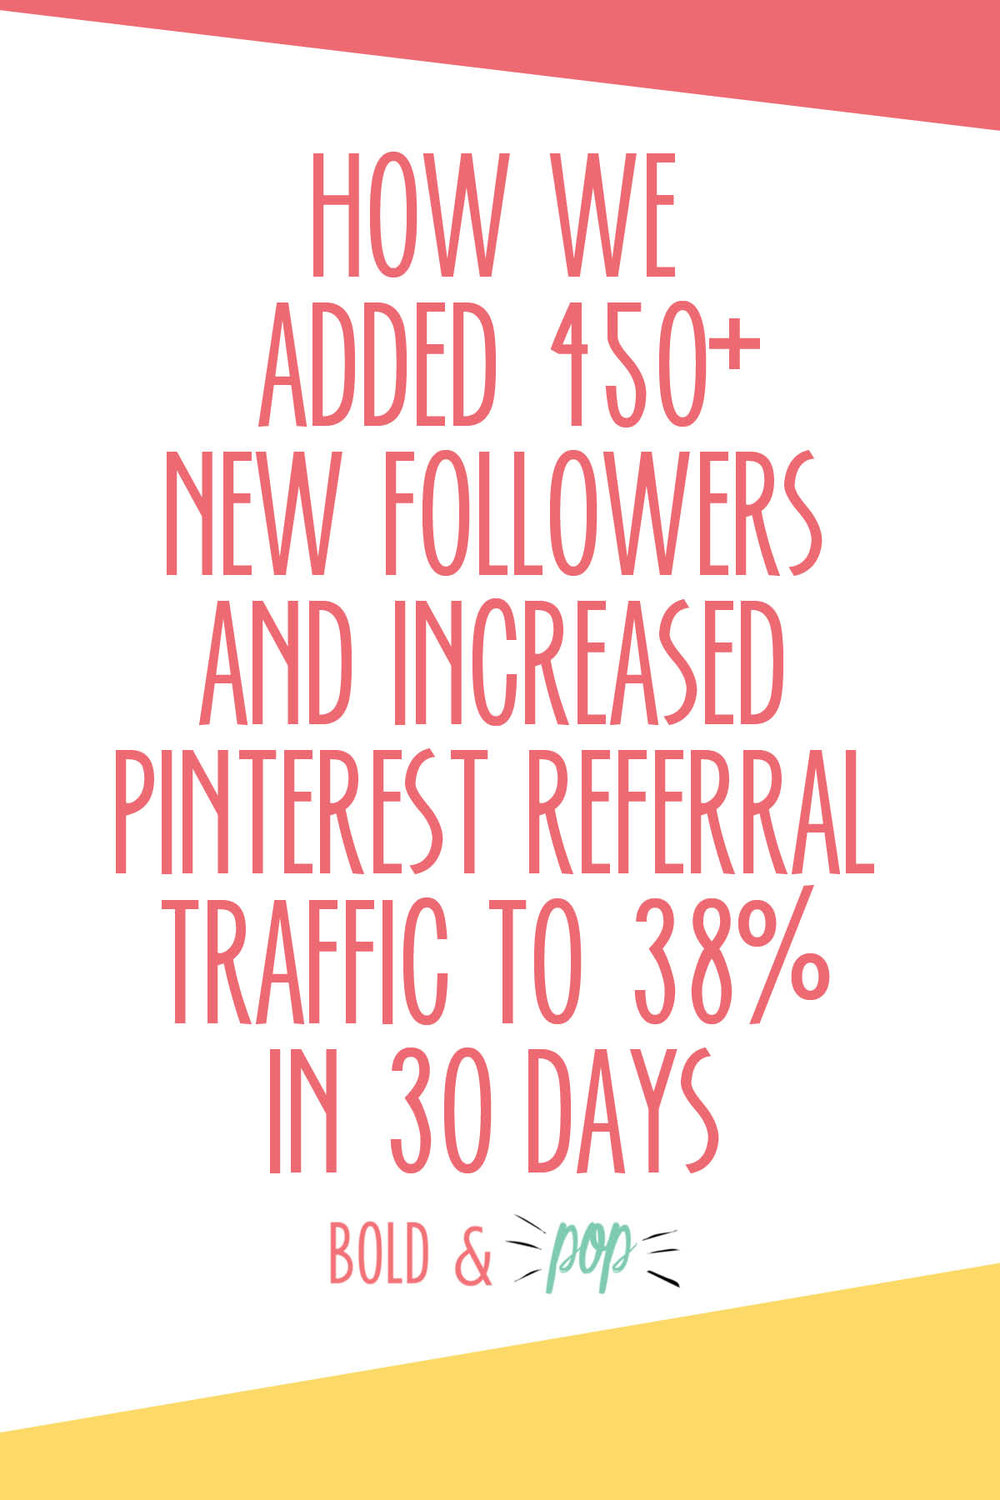 Bold & Pop : How We Added 450+ New Followers and Increased Pinterest Referral Traffic to 38% in 30 Days